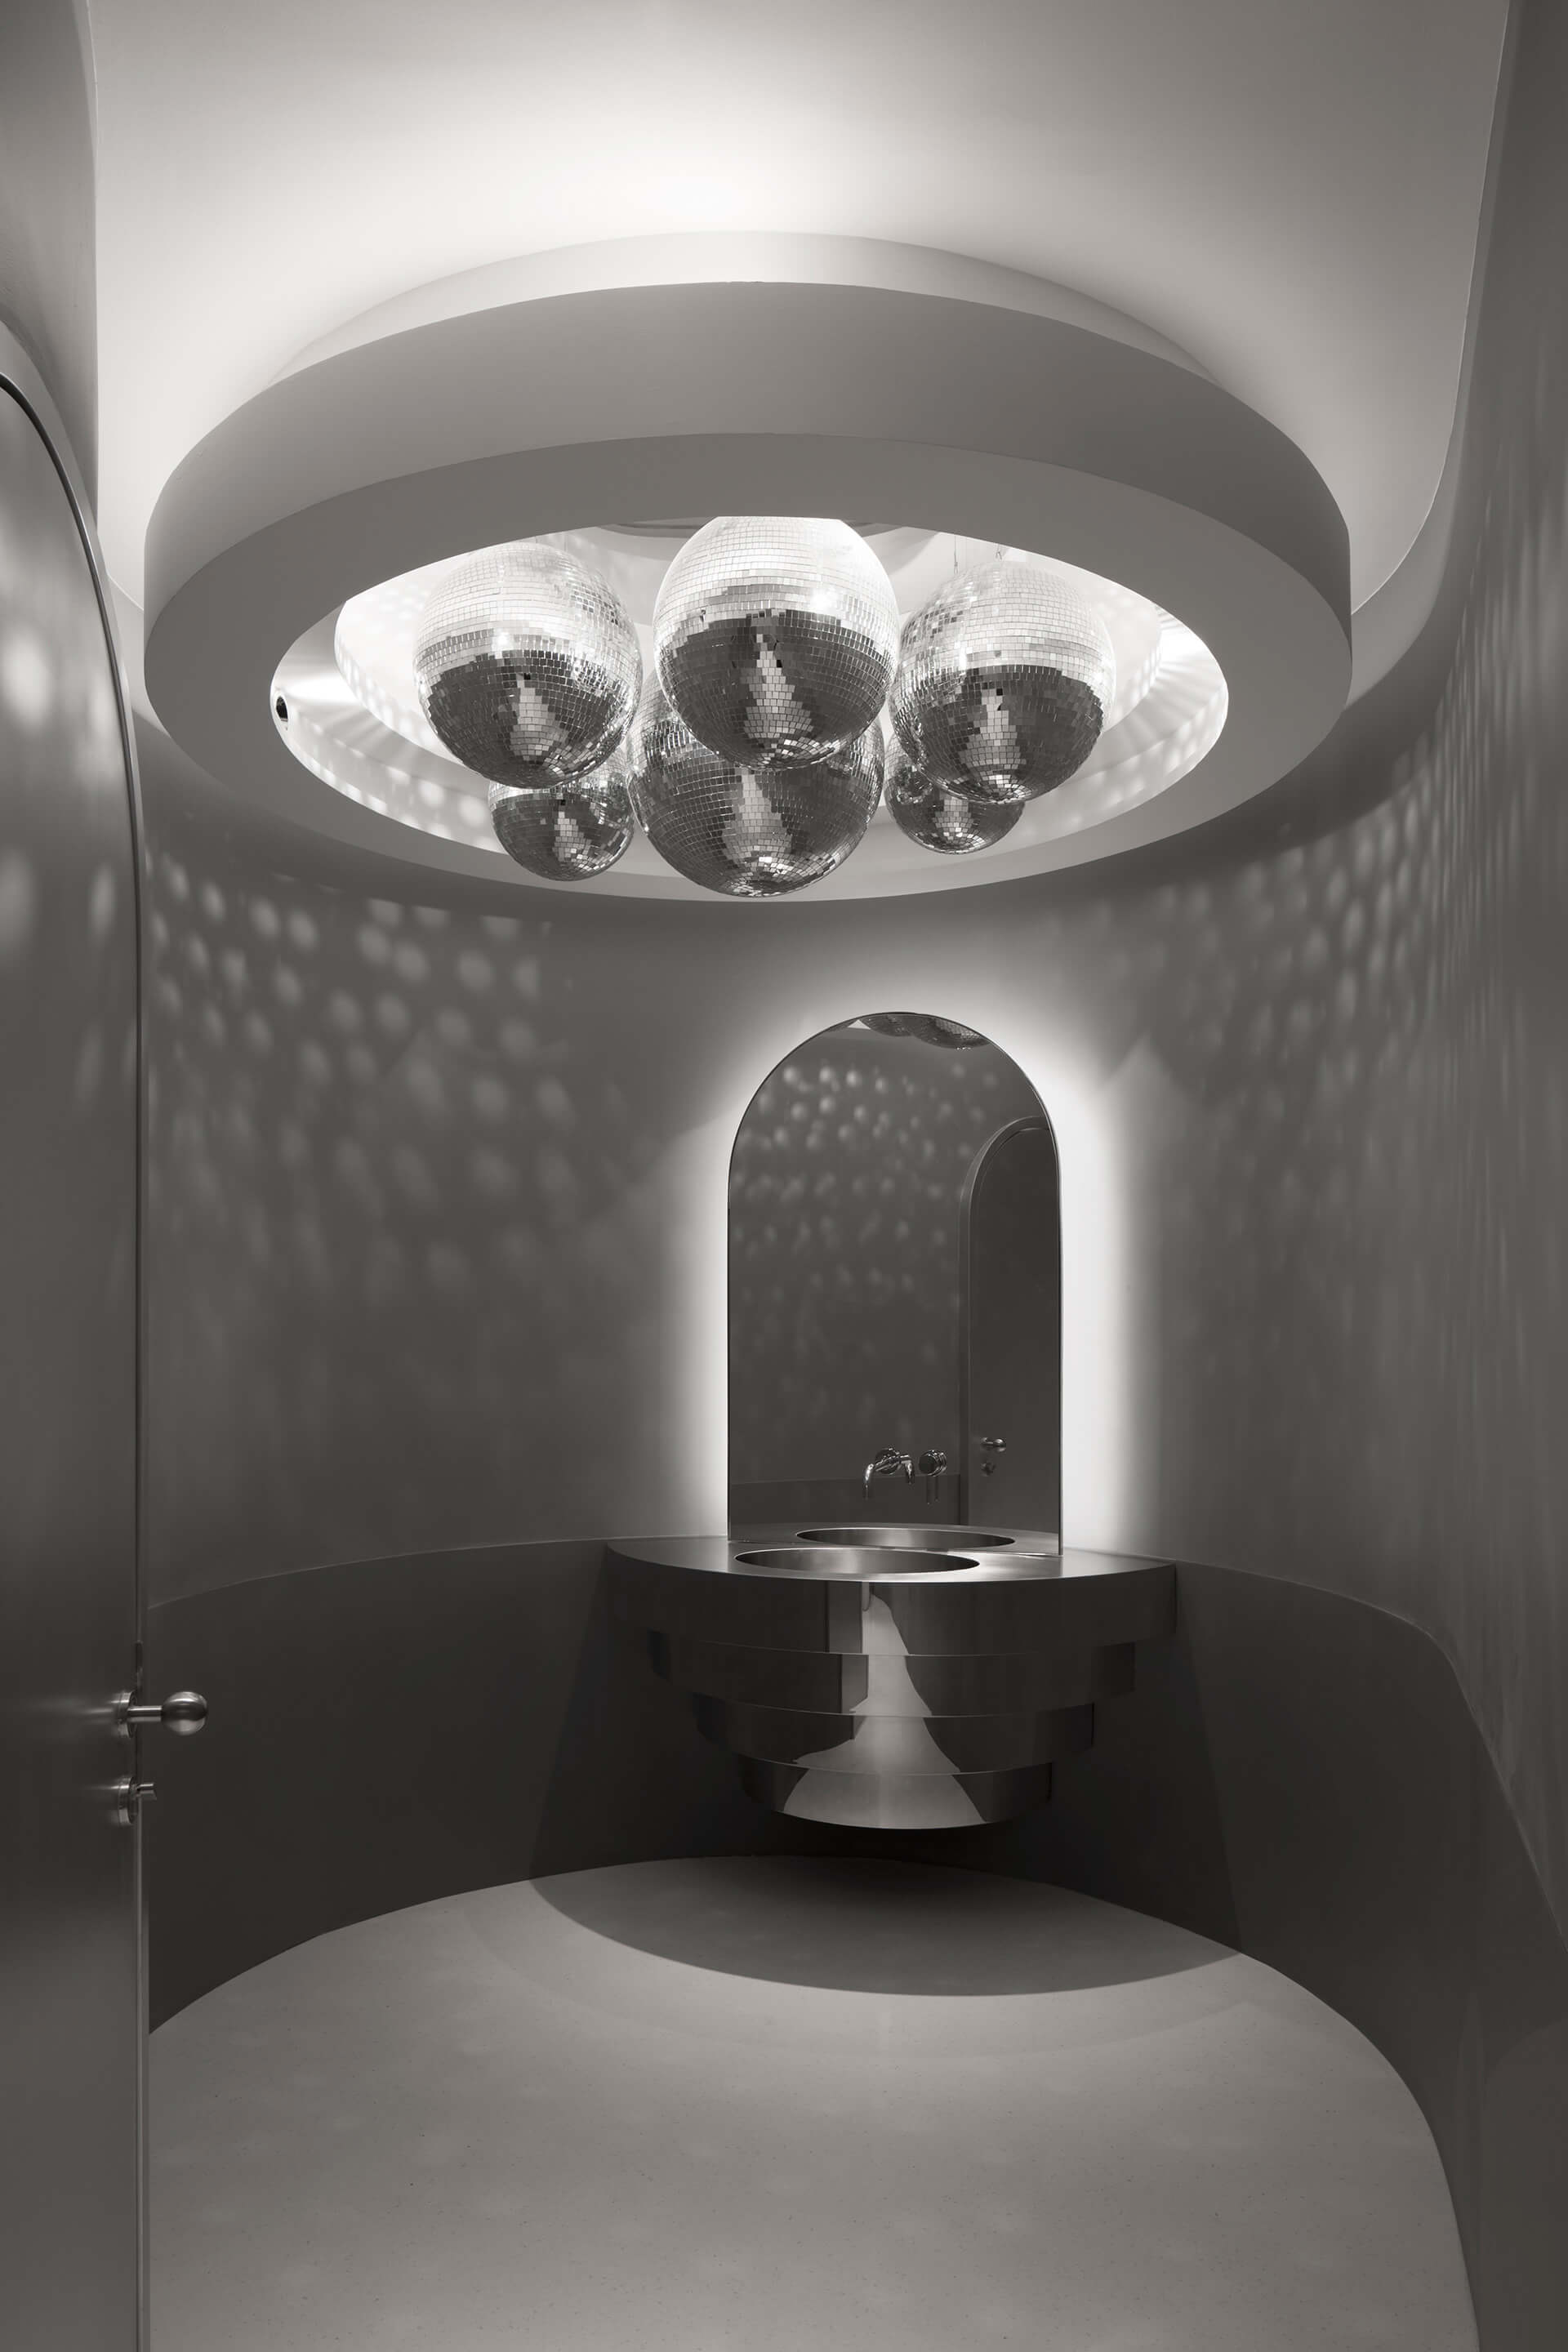 The VIP bathroom is punctuated by an installation of mirror balls | Masquerade by 123 Architects | STIRworld